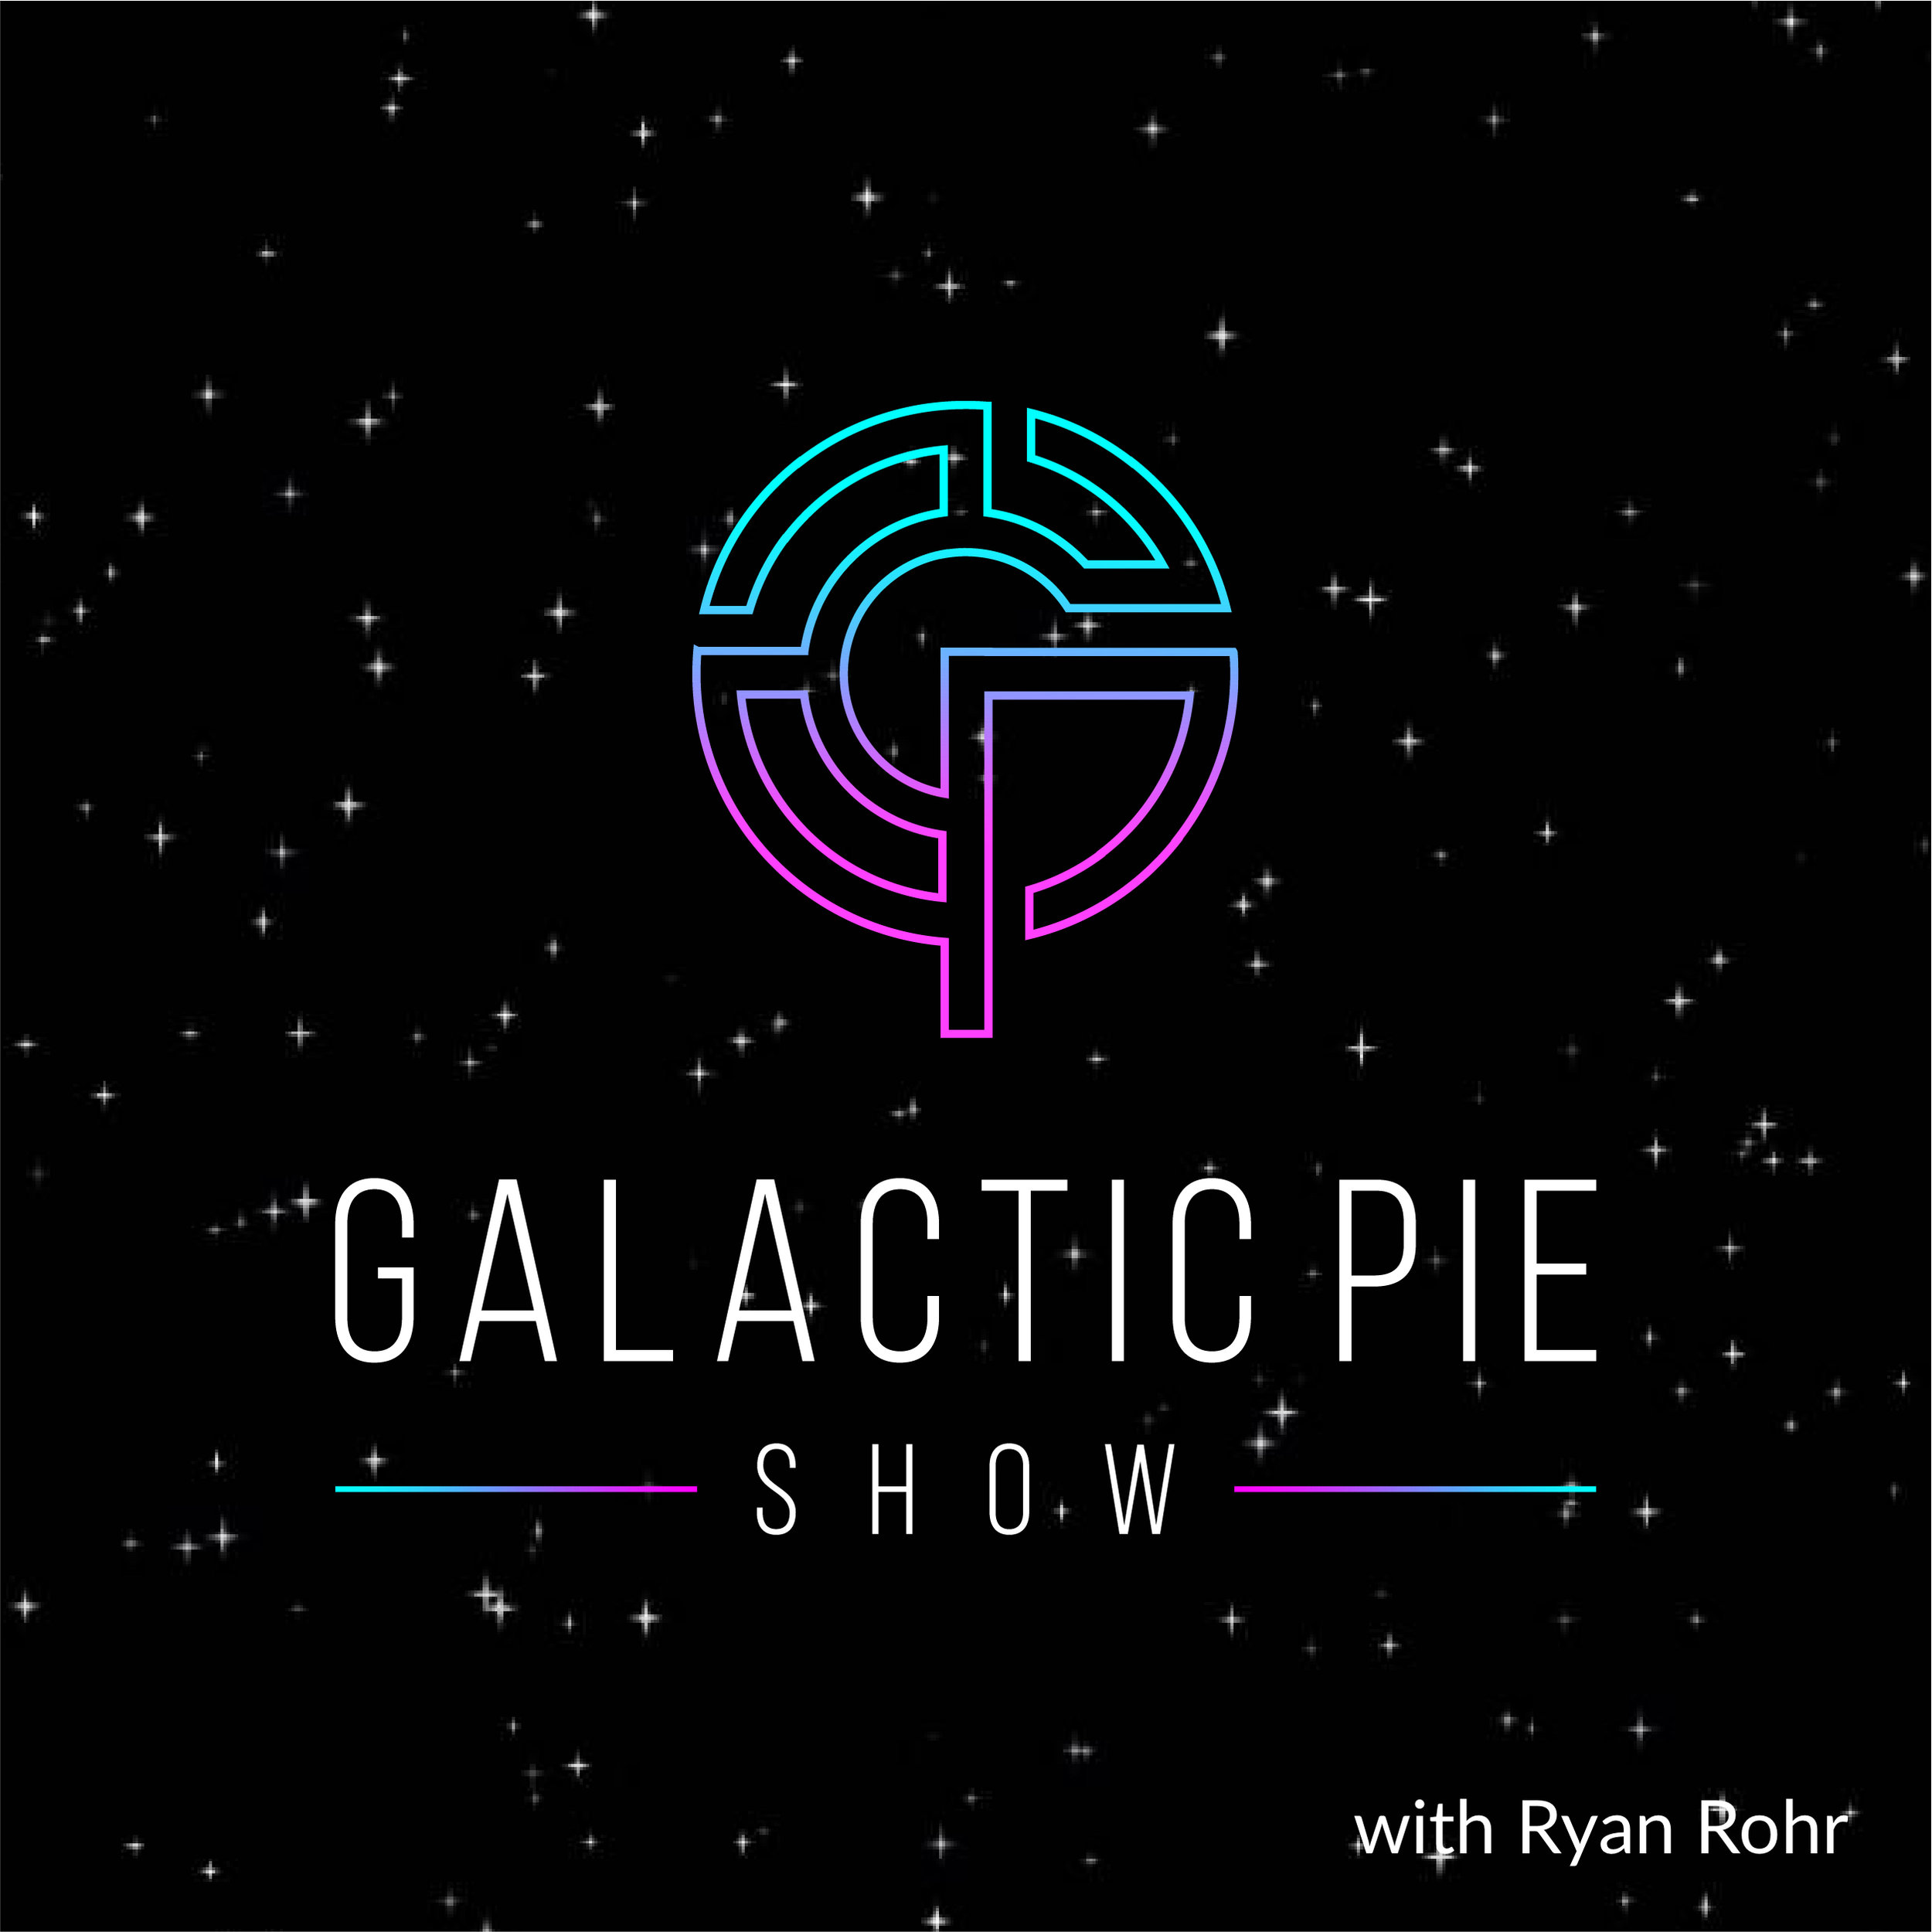 Galactic Pie Show - with Ryan Rohr